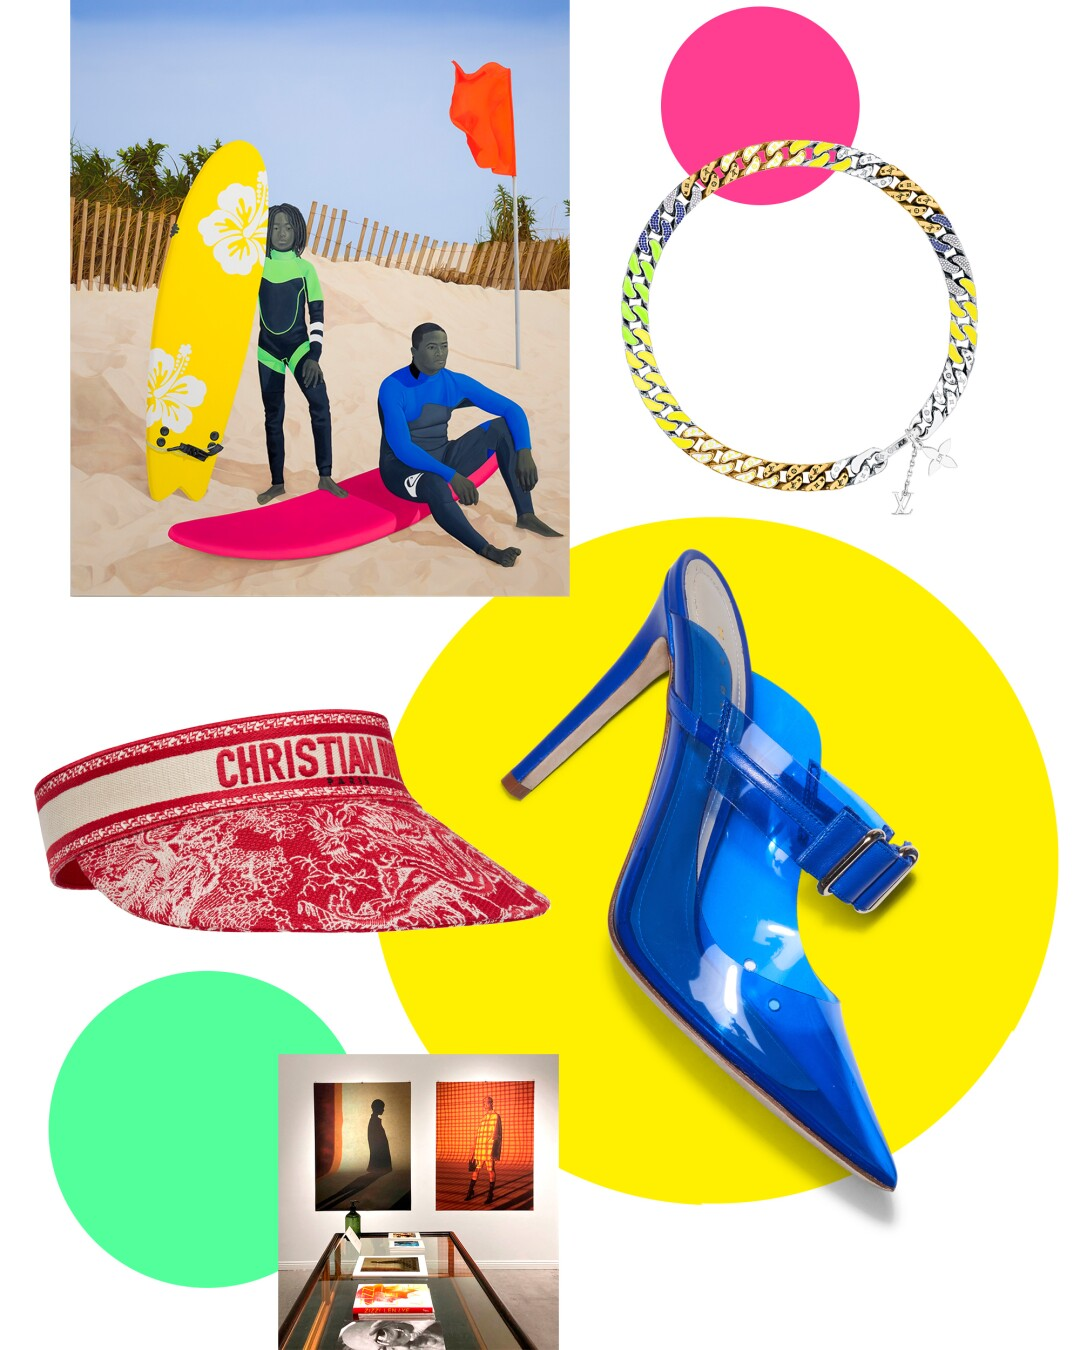 Collage of luxury items, an Amy Sherald painting of two Black surfers on a beach, a Dries Van Noten installation